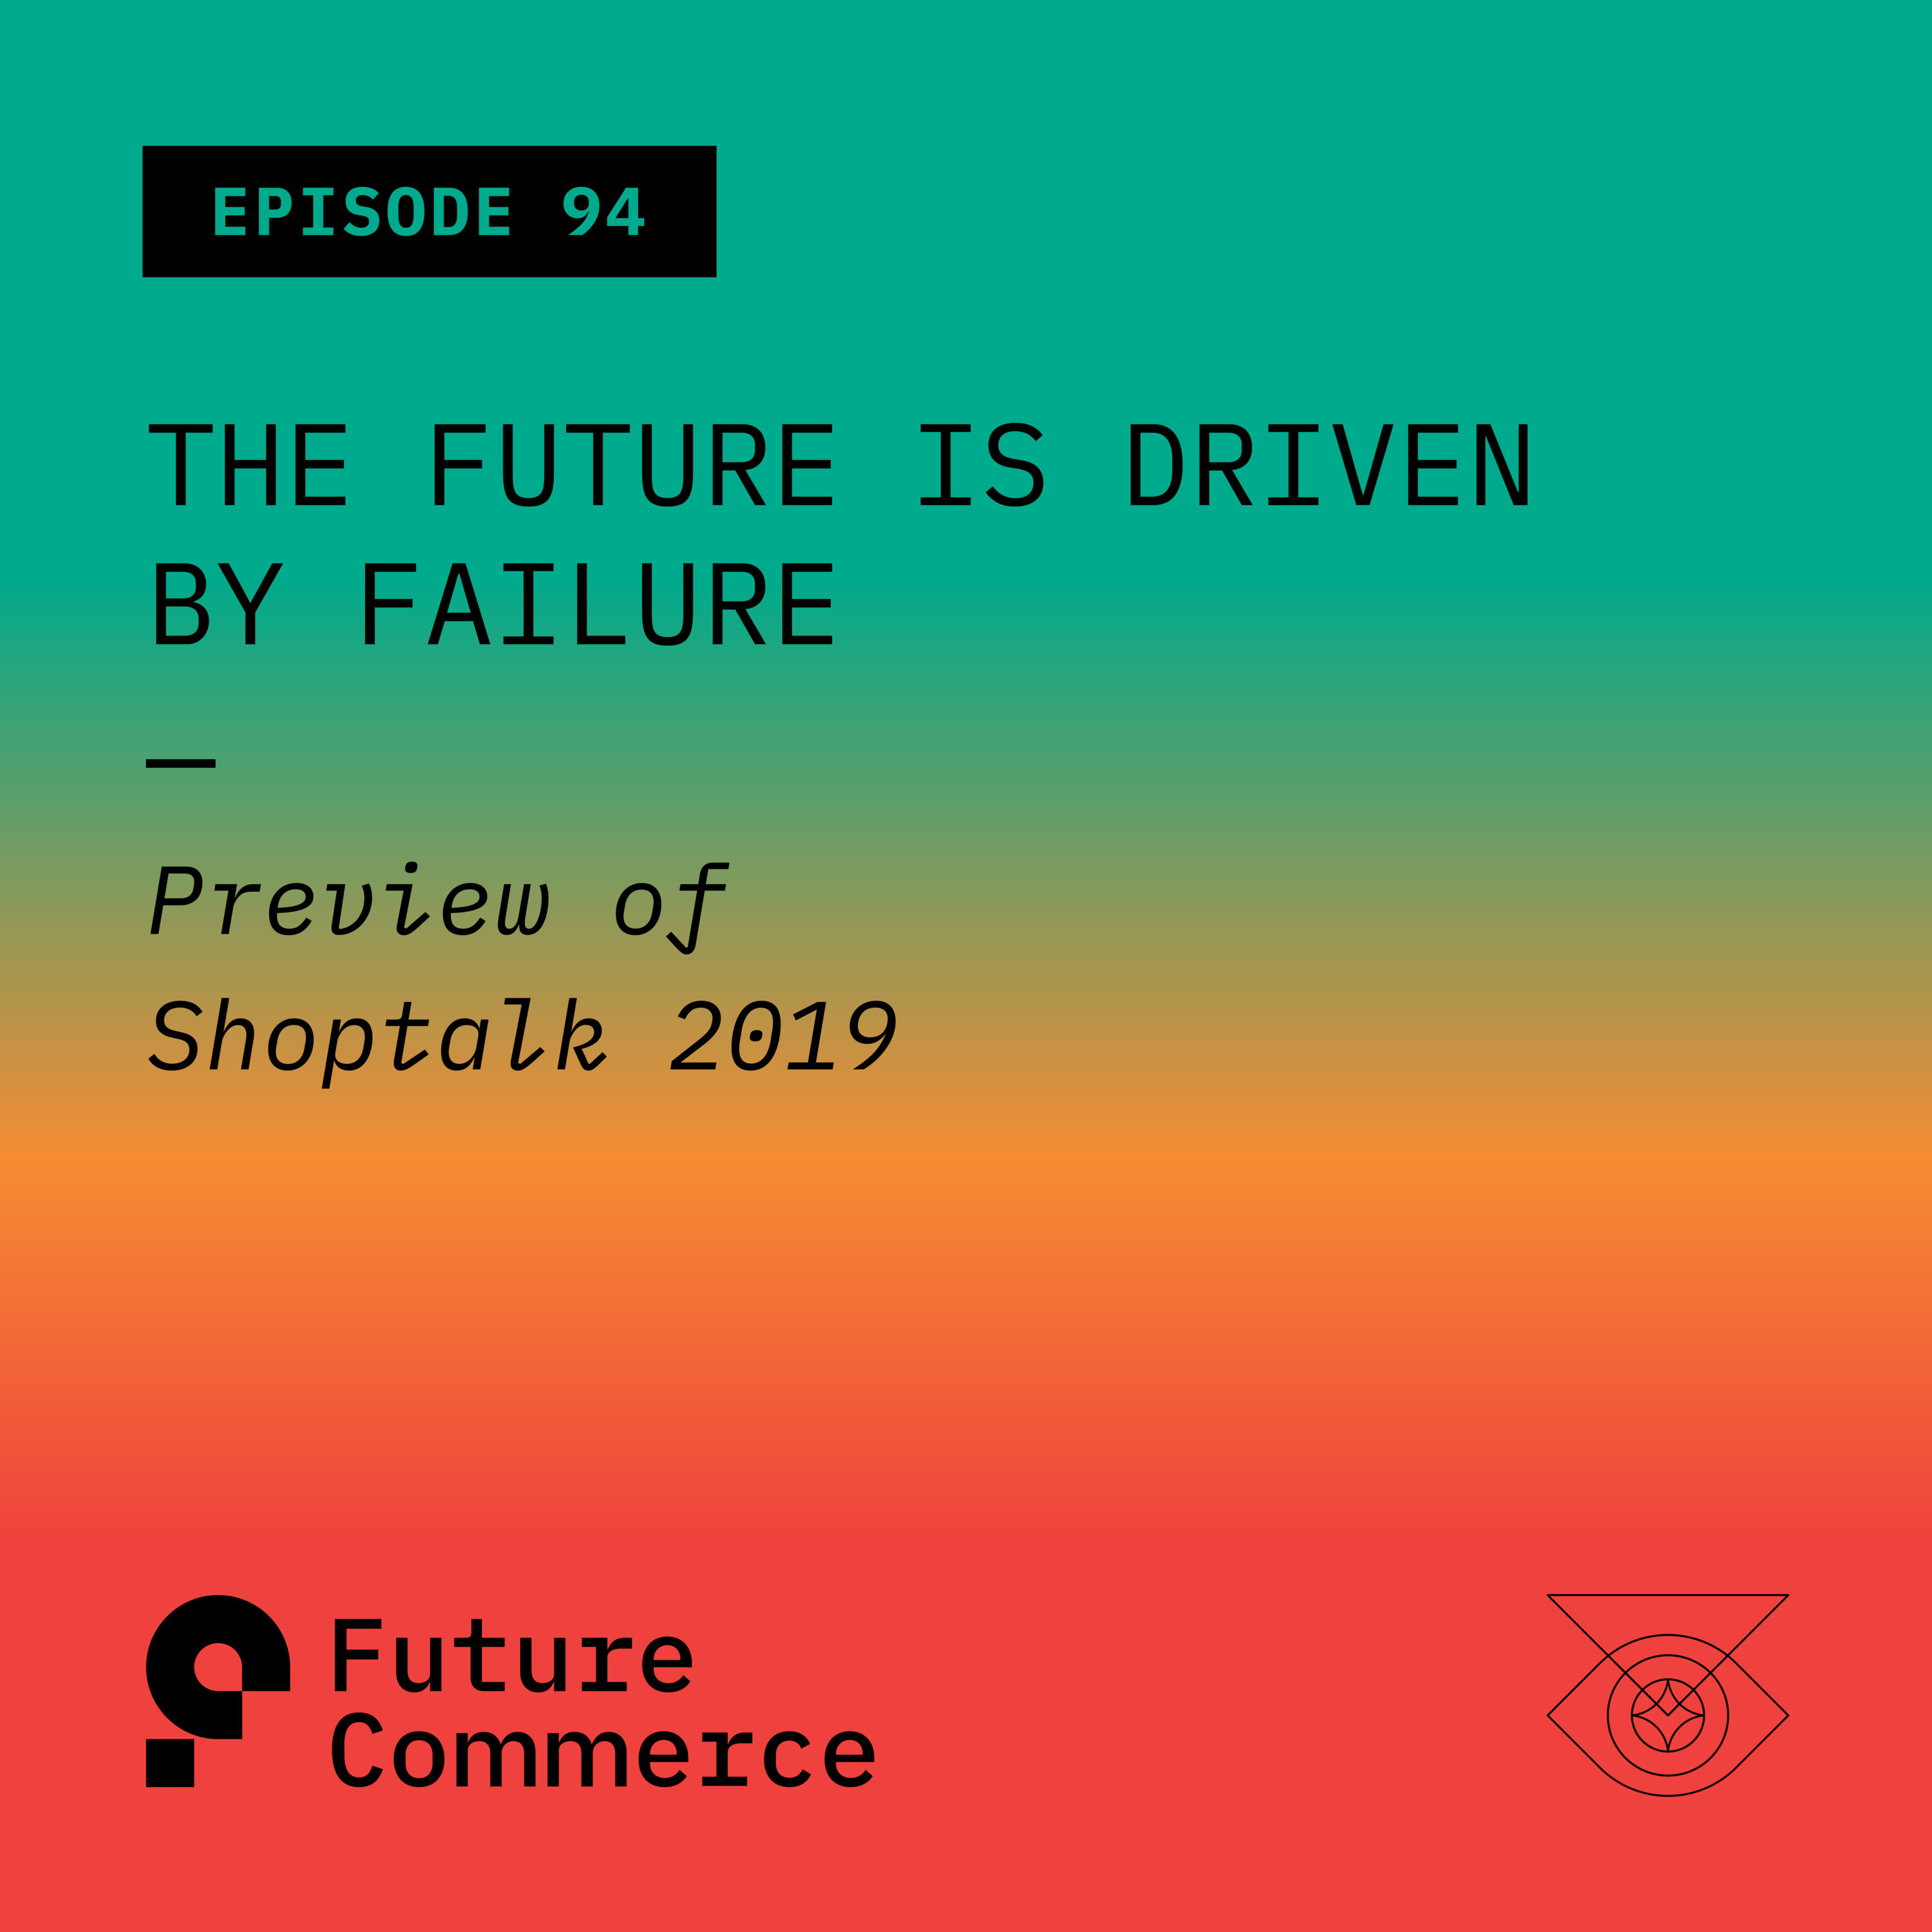 The Future is Driven by Failure